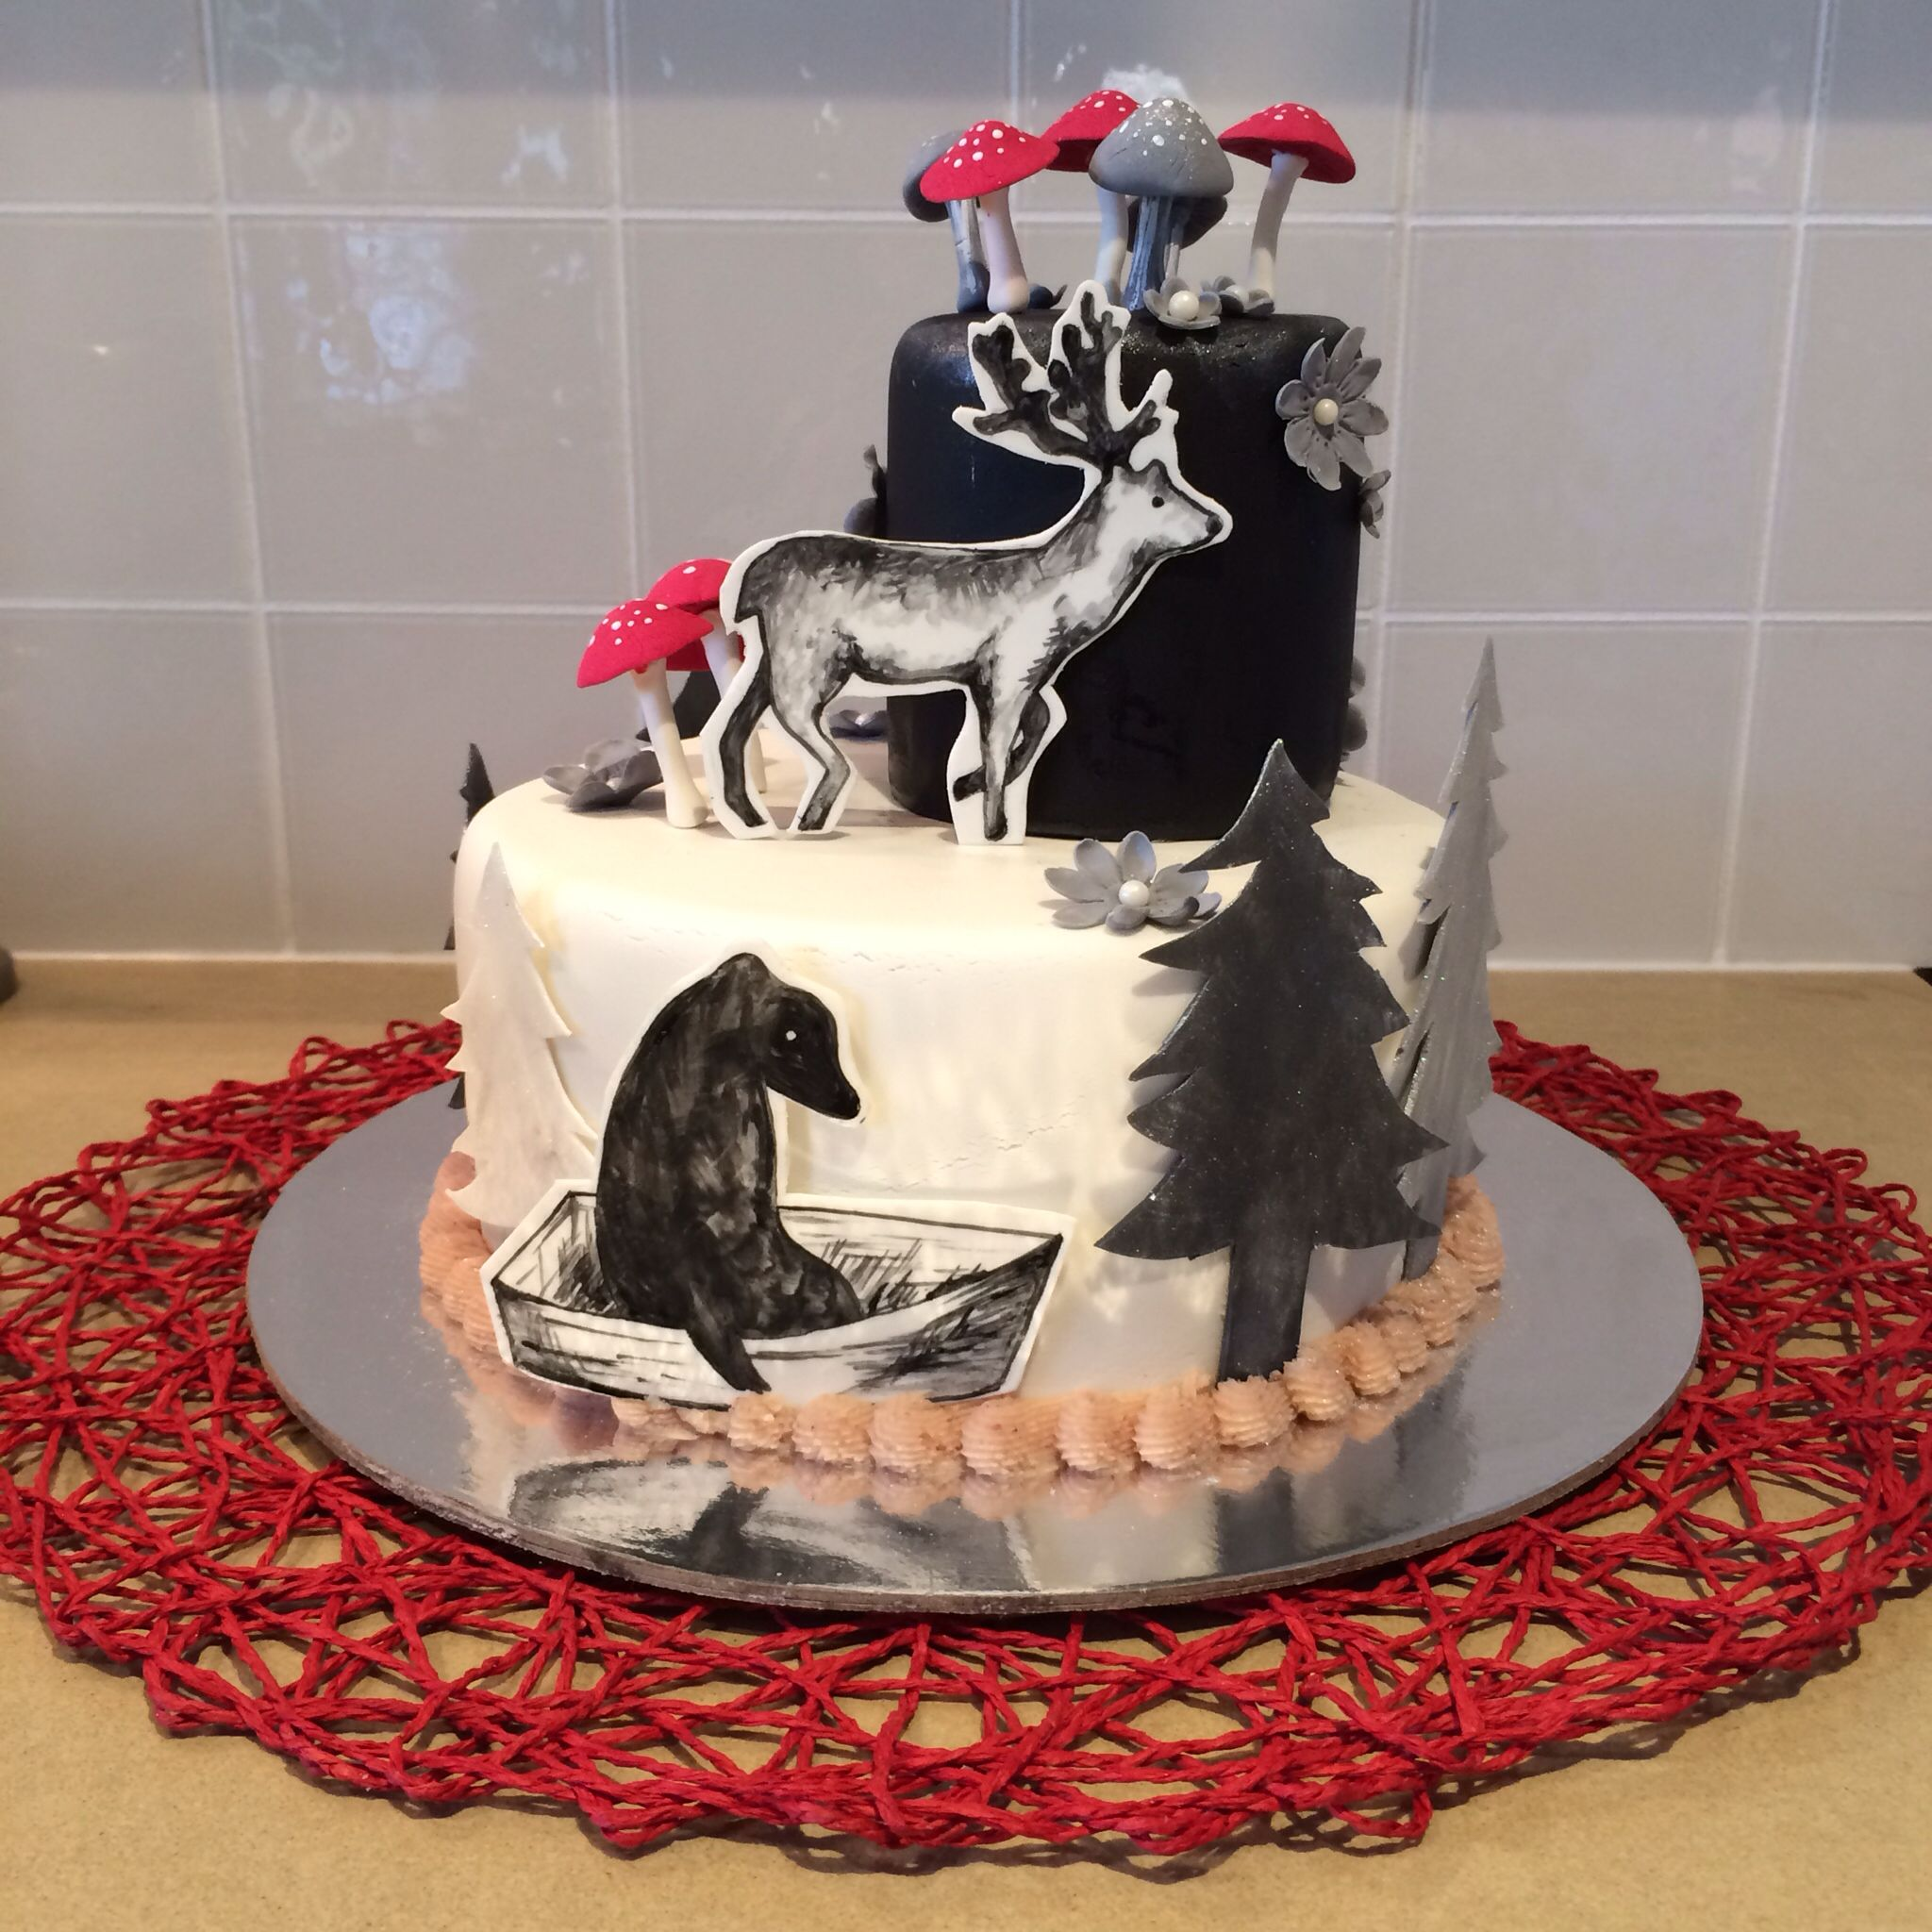 Cake Black Forest Birthday : Black forest themed birthday cake. A&A Events & Cakes ...